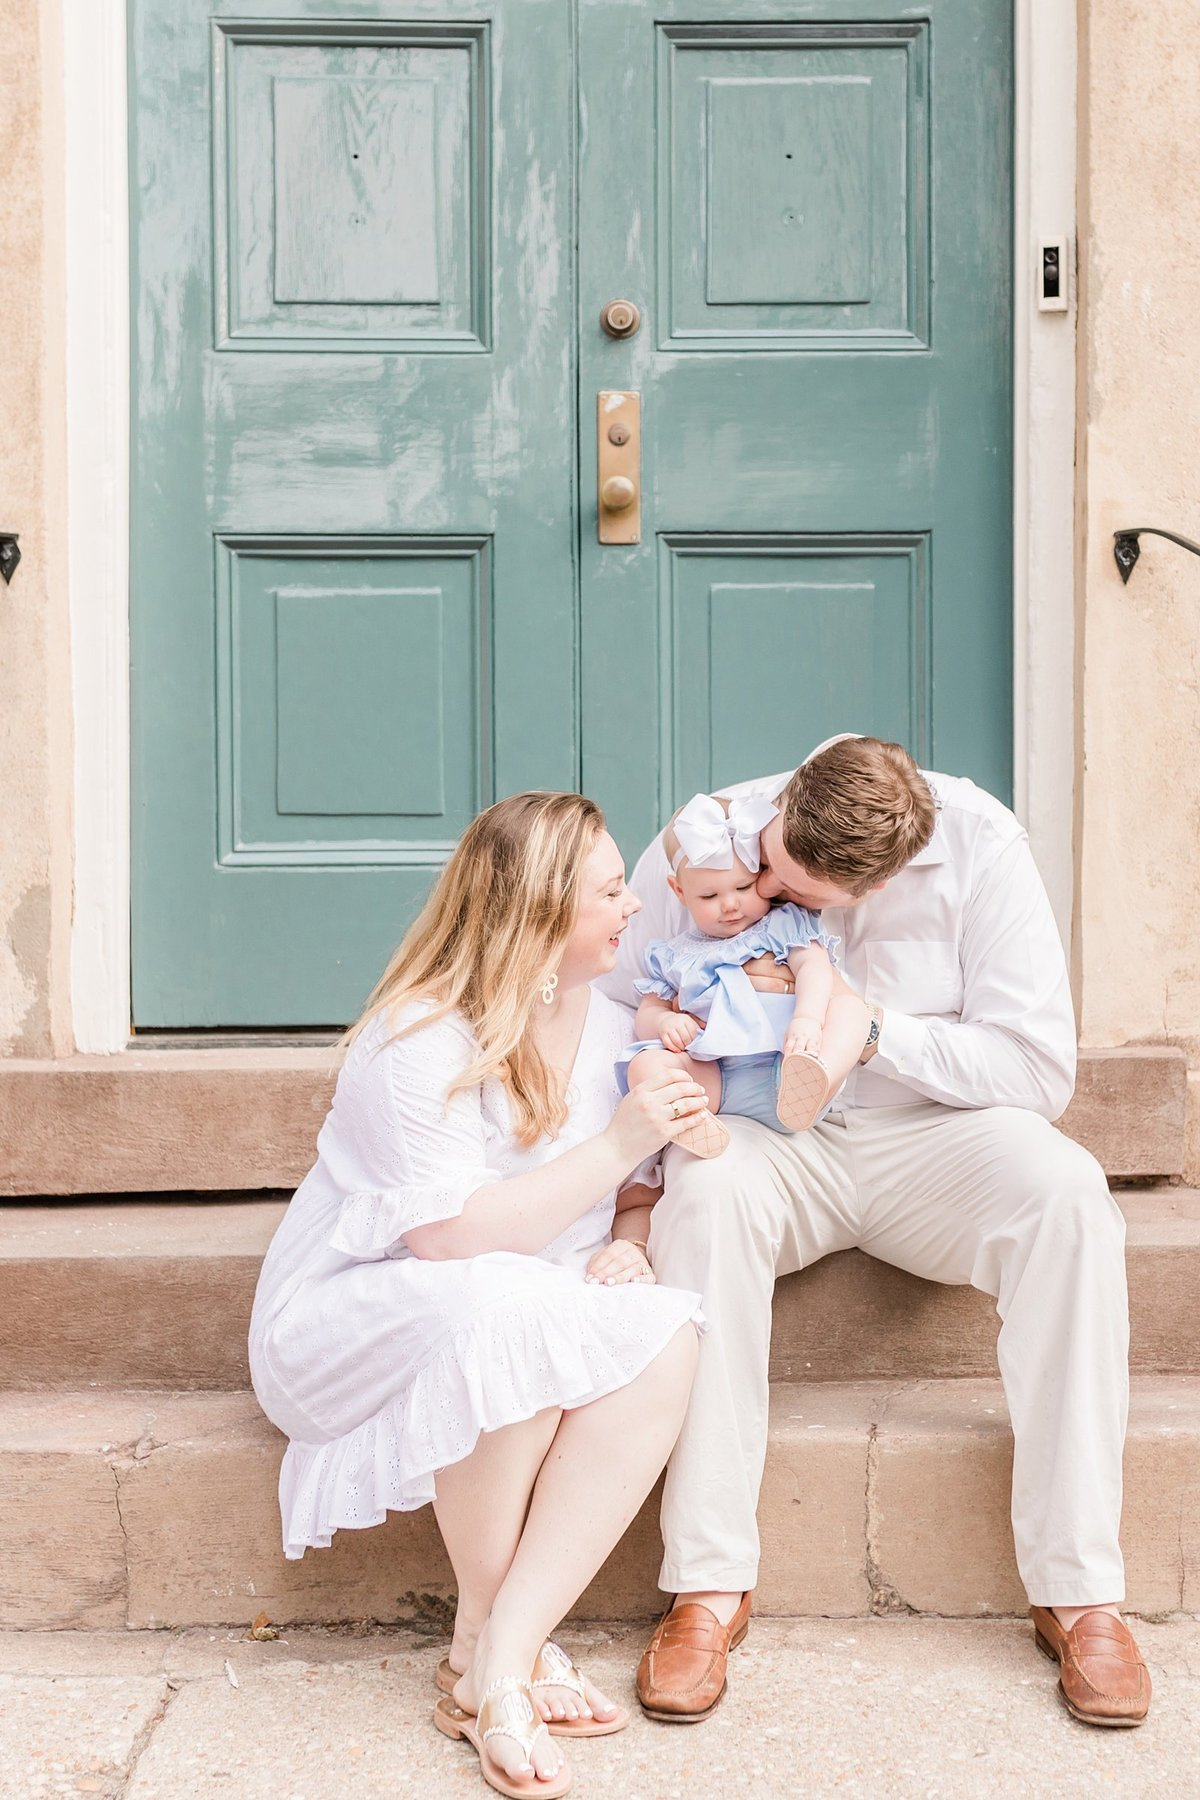 Downtown-Charleston-Family-Photography-Session-_0014